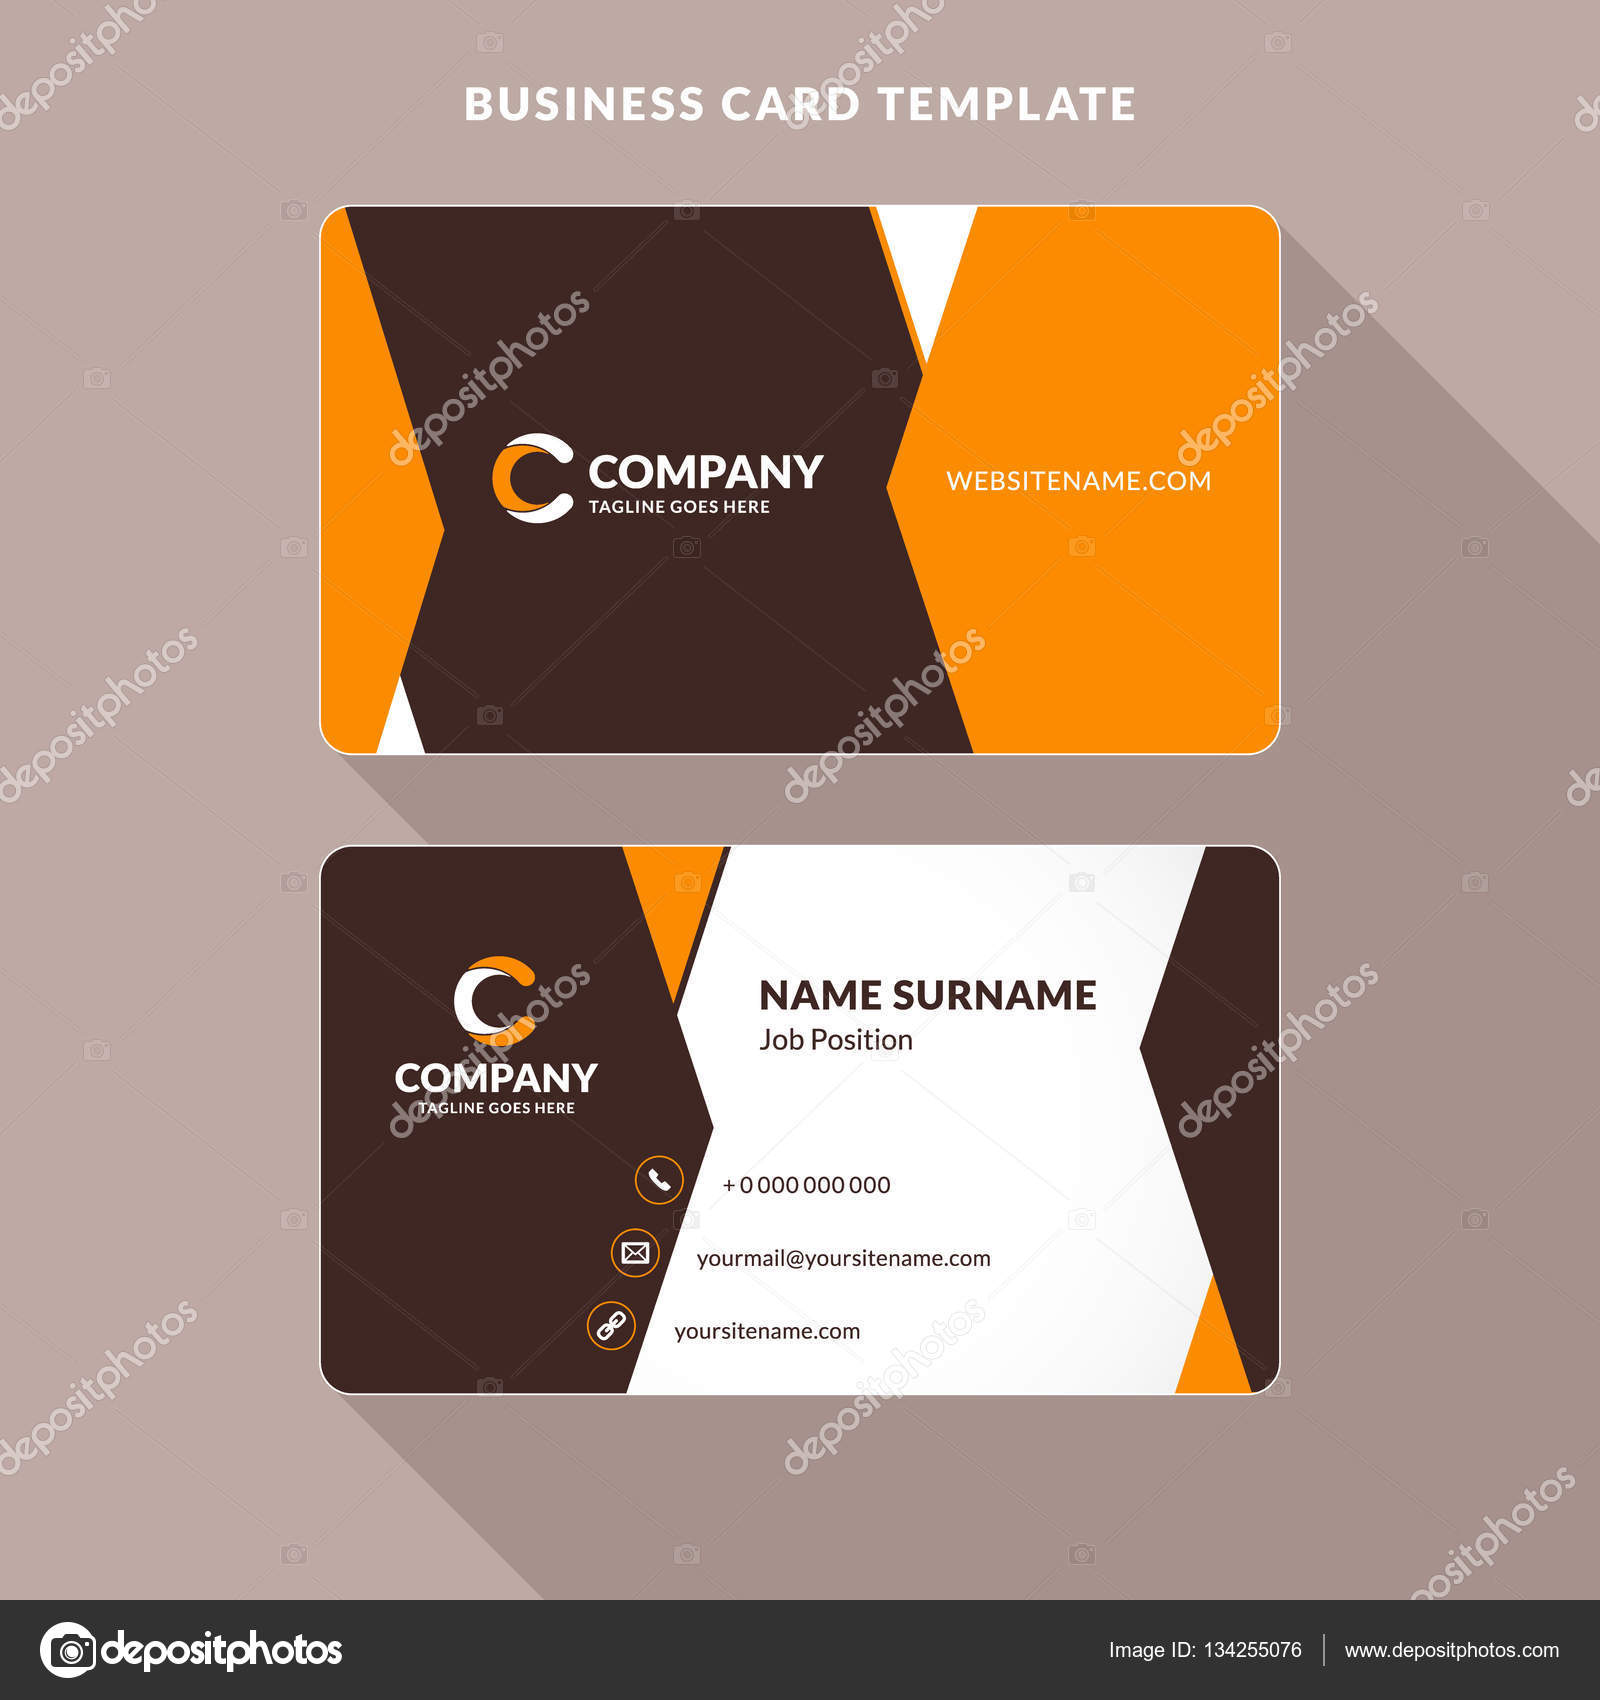 Creative and clean double sided business card template orange and creative and clean double sided business card template orange and brown colors flat wajeb Image collections